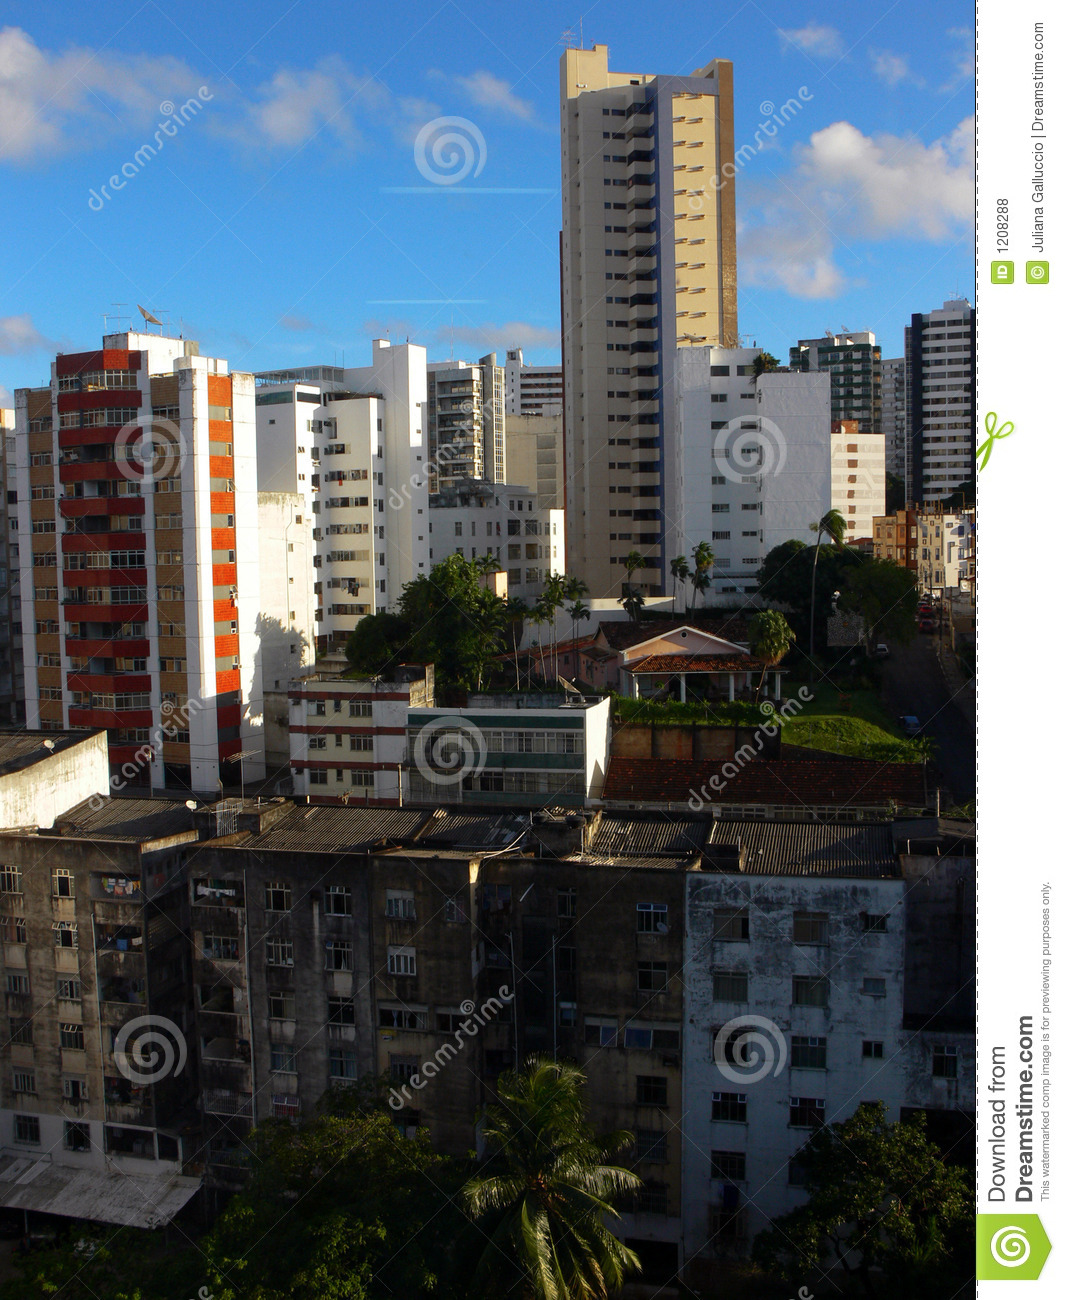 Modern Cityscape Stock Photo. Image Of Apartments, Houses